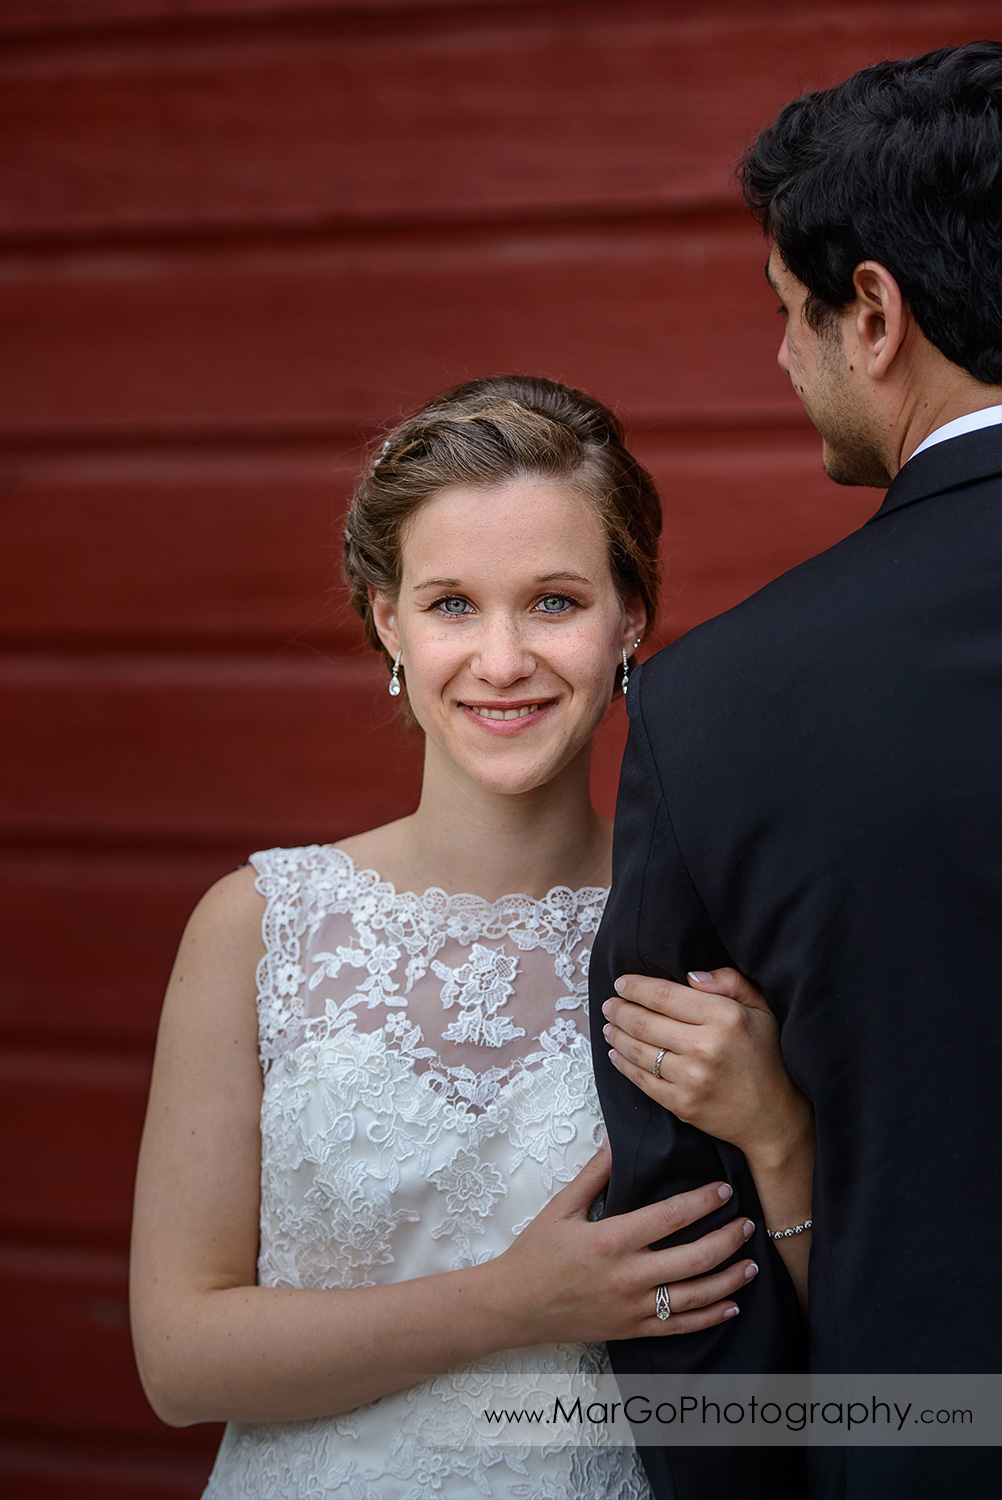 portrait of bride holding hands on groom's arm on the red barn wall during bridal session at Shinn Historical Park and Arboretum in Fremont